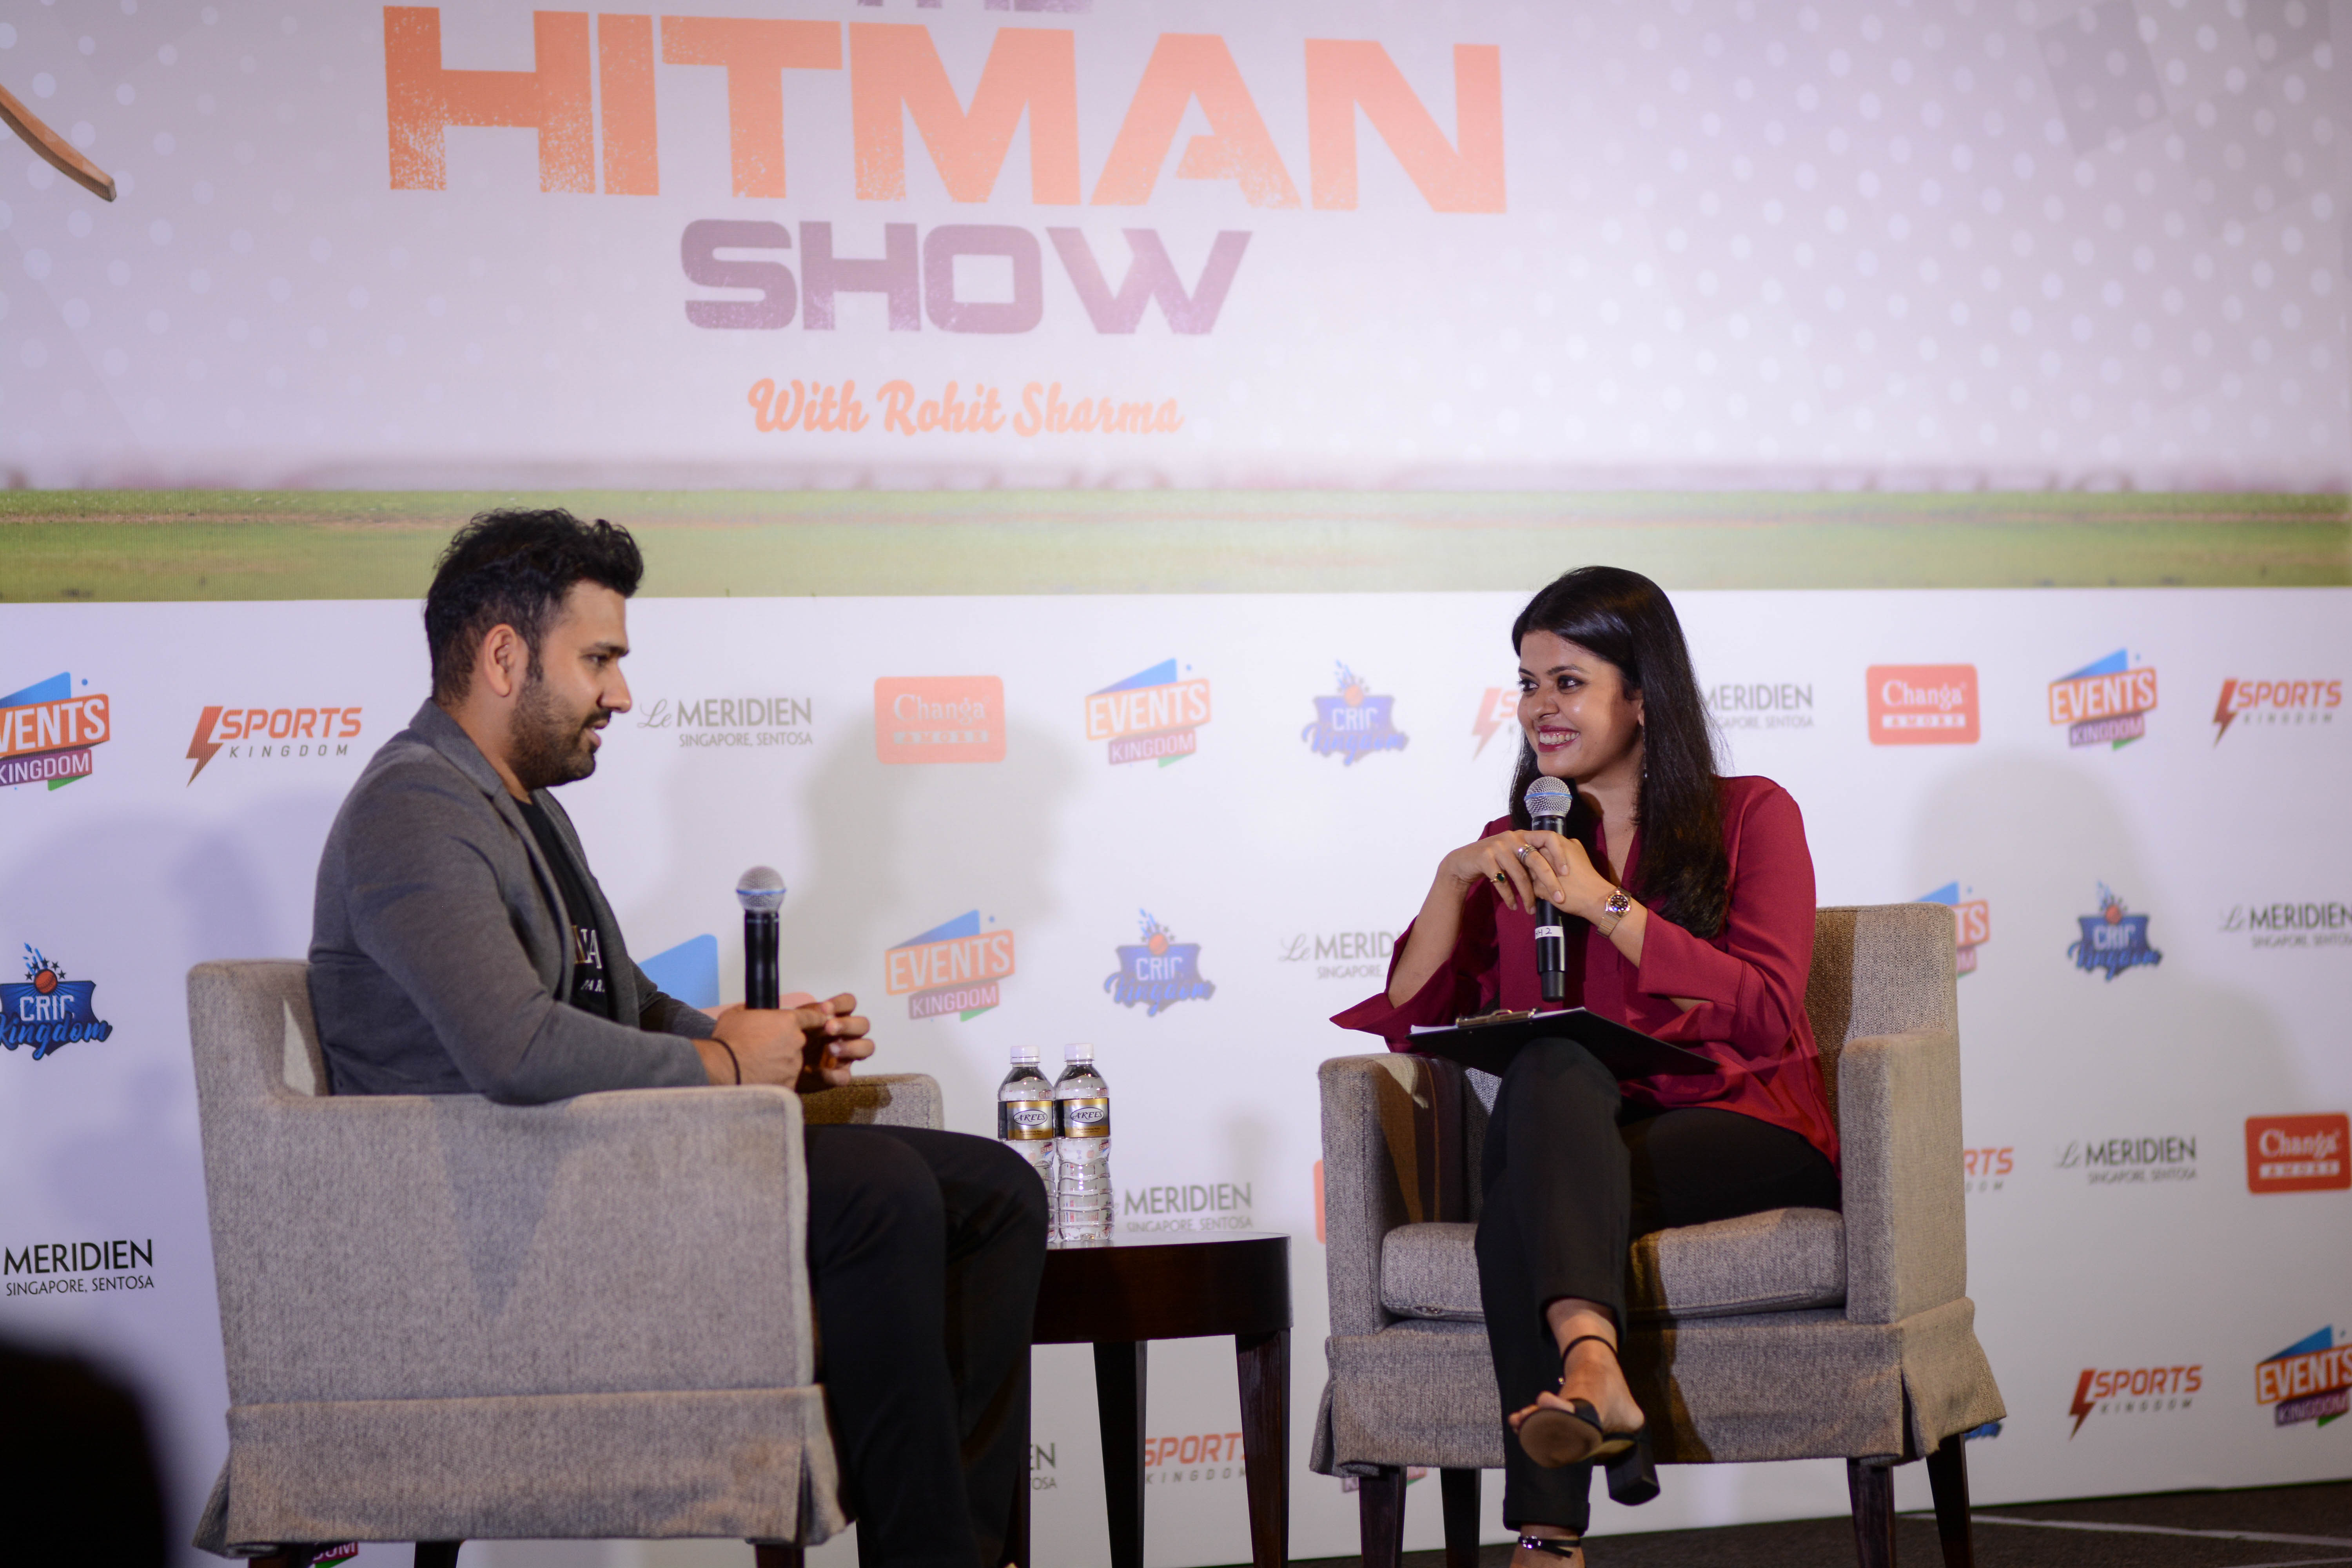 Rohit Sharma on stage for The Hitman Show and an interaction with Connected to India's Punam Sharrma. Photo courtesy: Events Kingdom